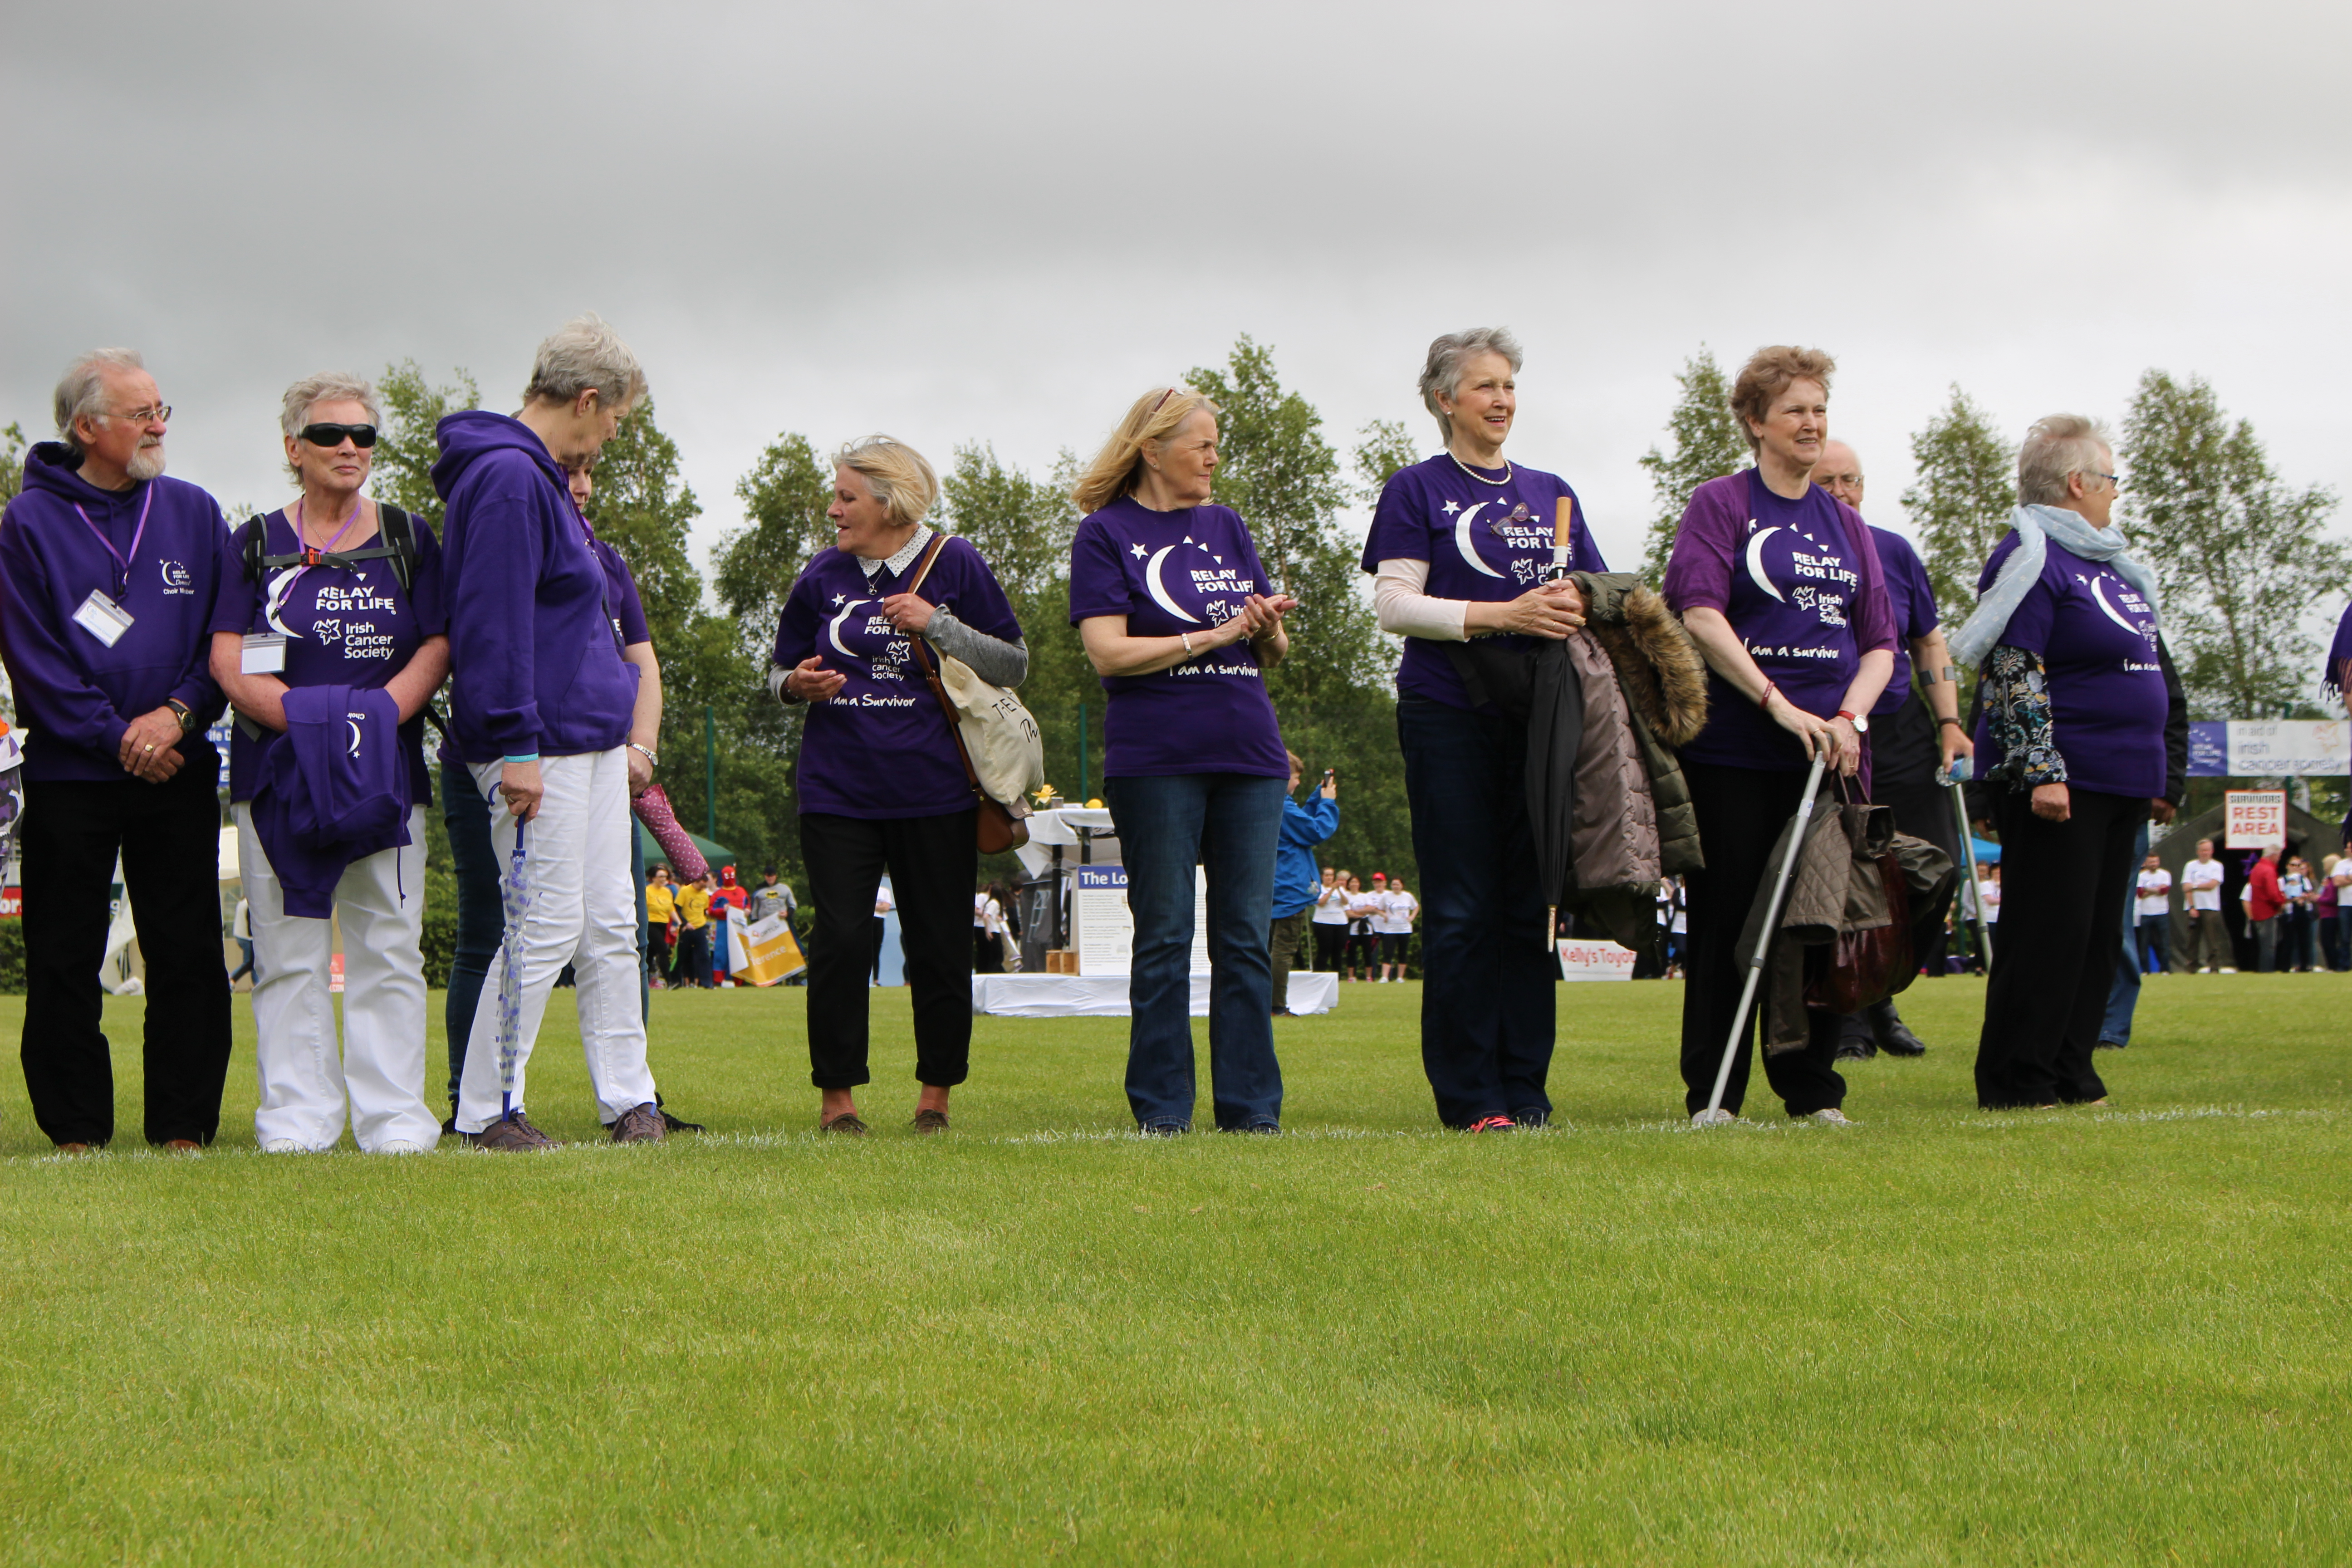 Cancer survivors at Relay For Life Donegal